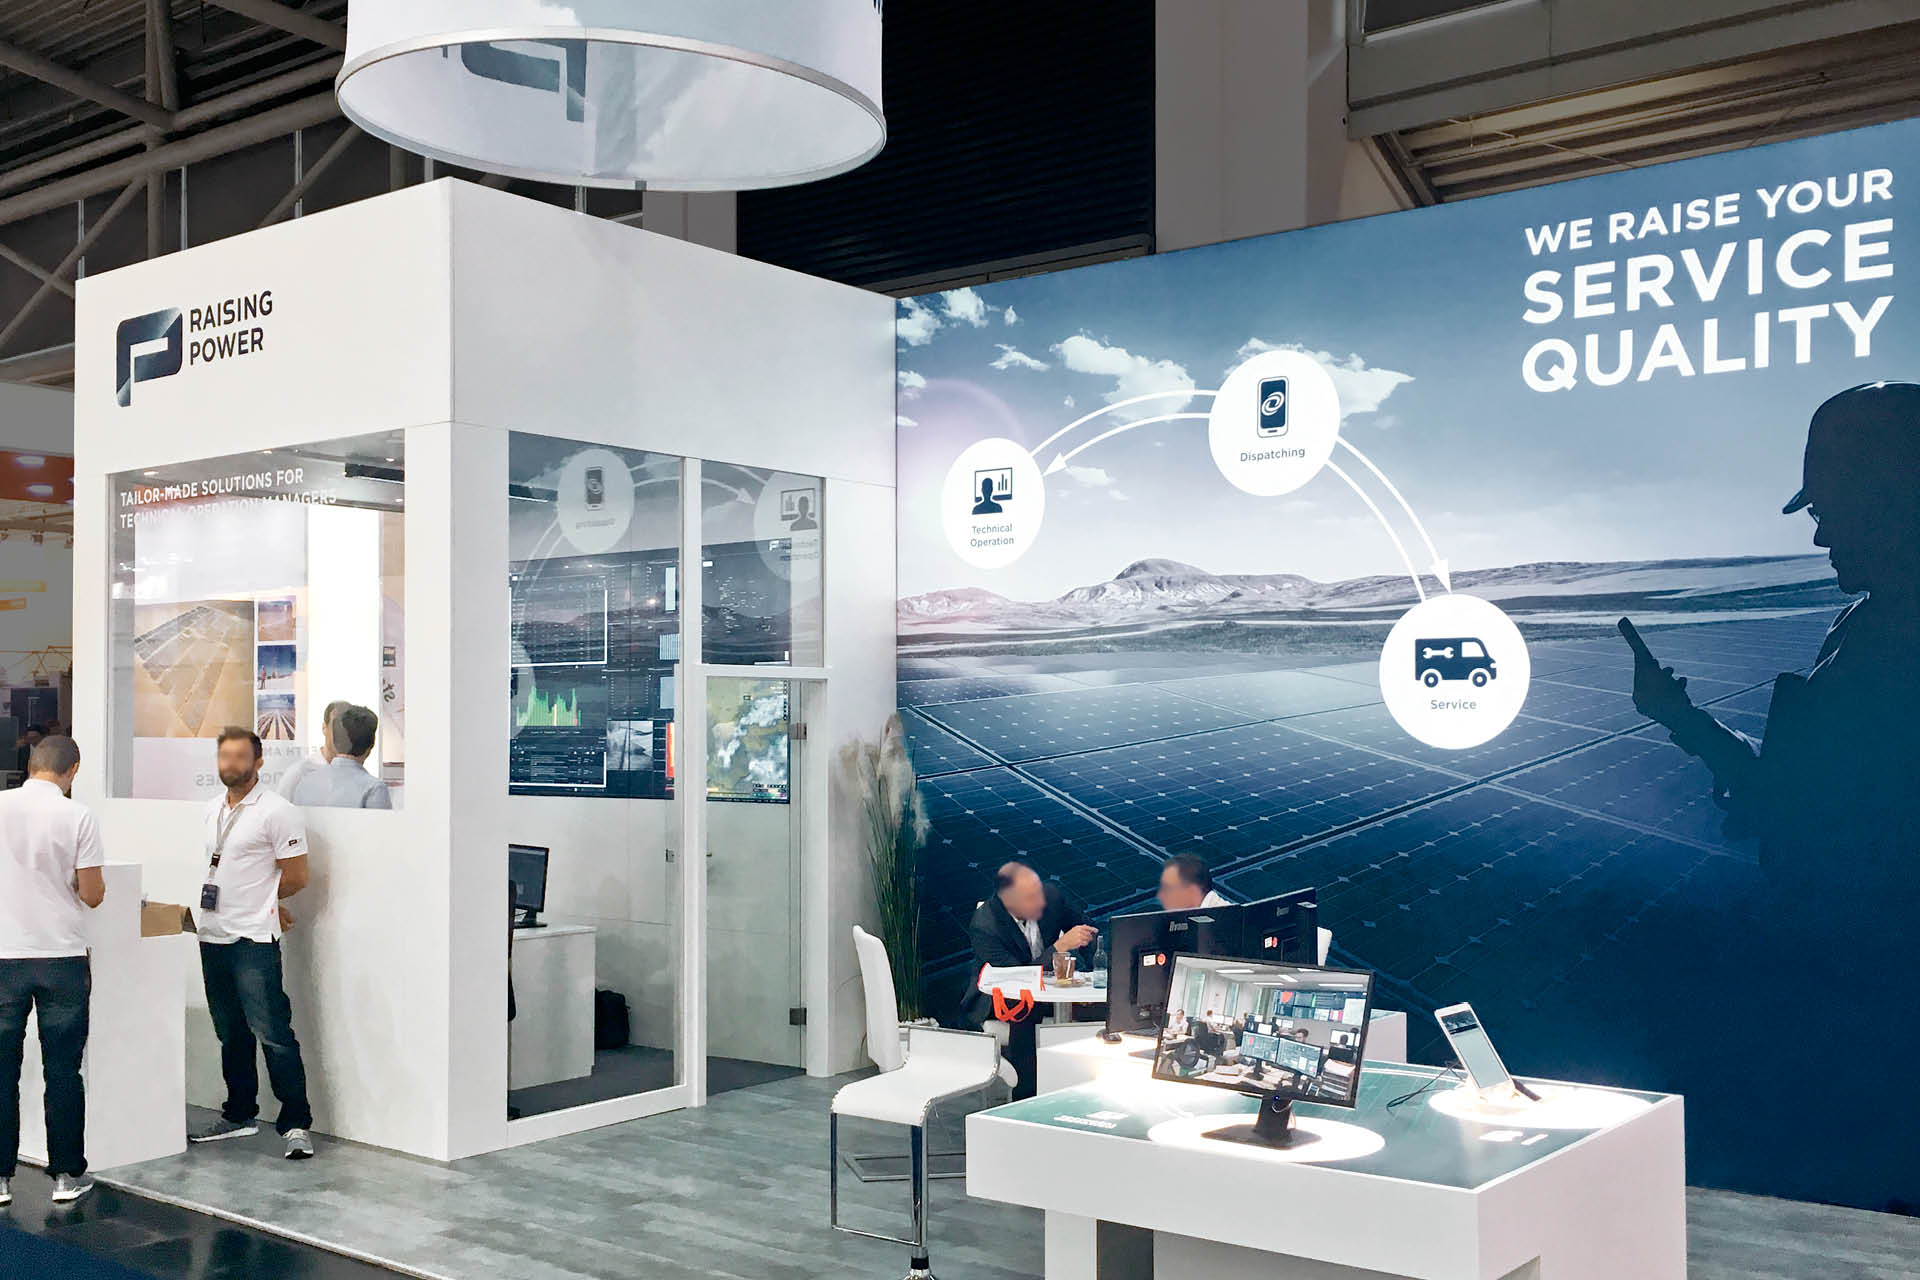 Raising Power Corporate Design Messestand Intersolar Übersicht